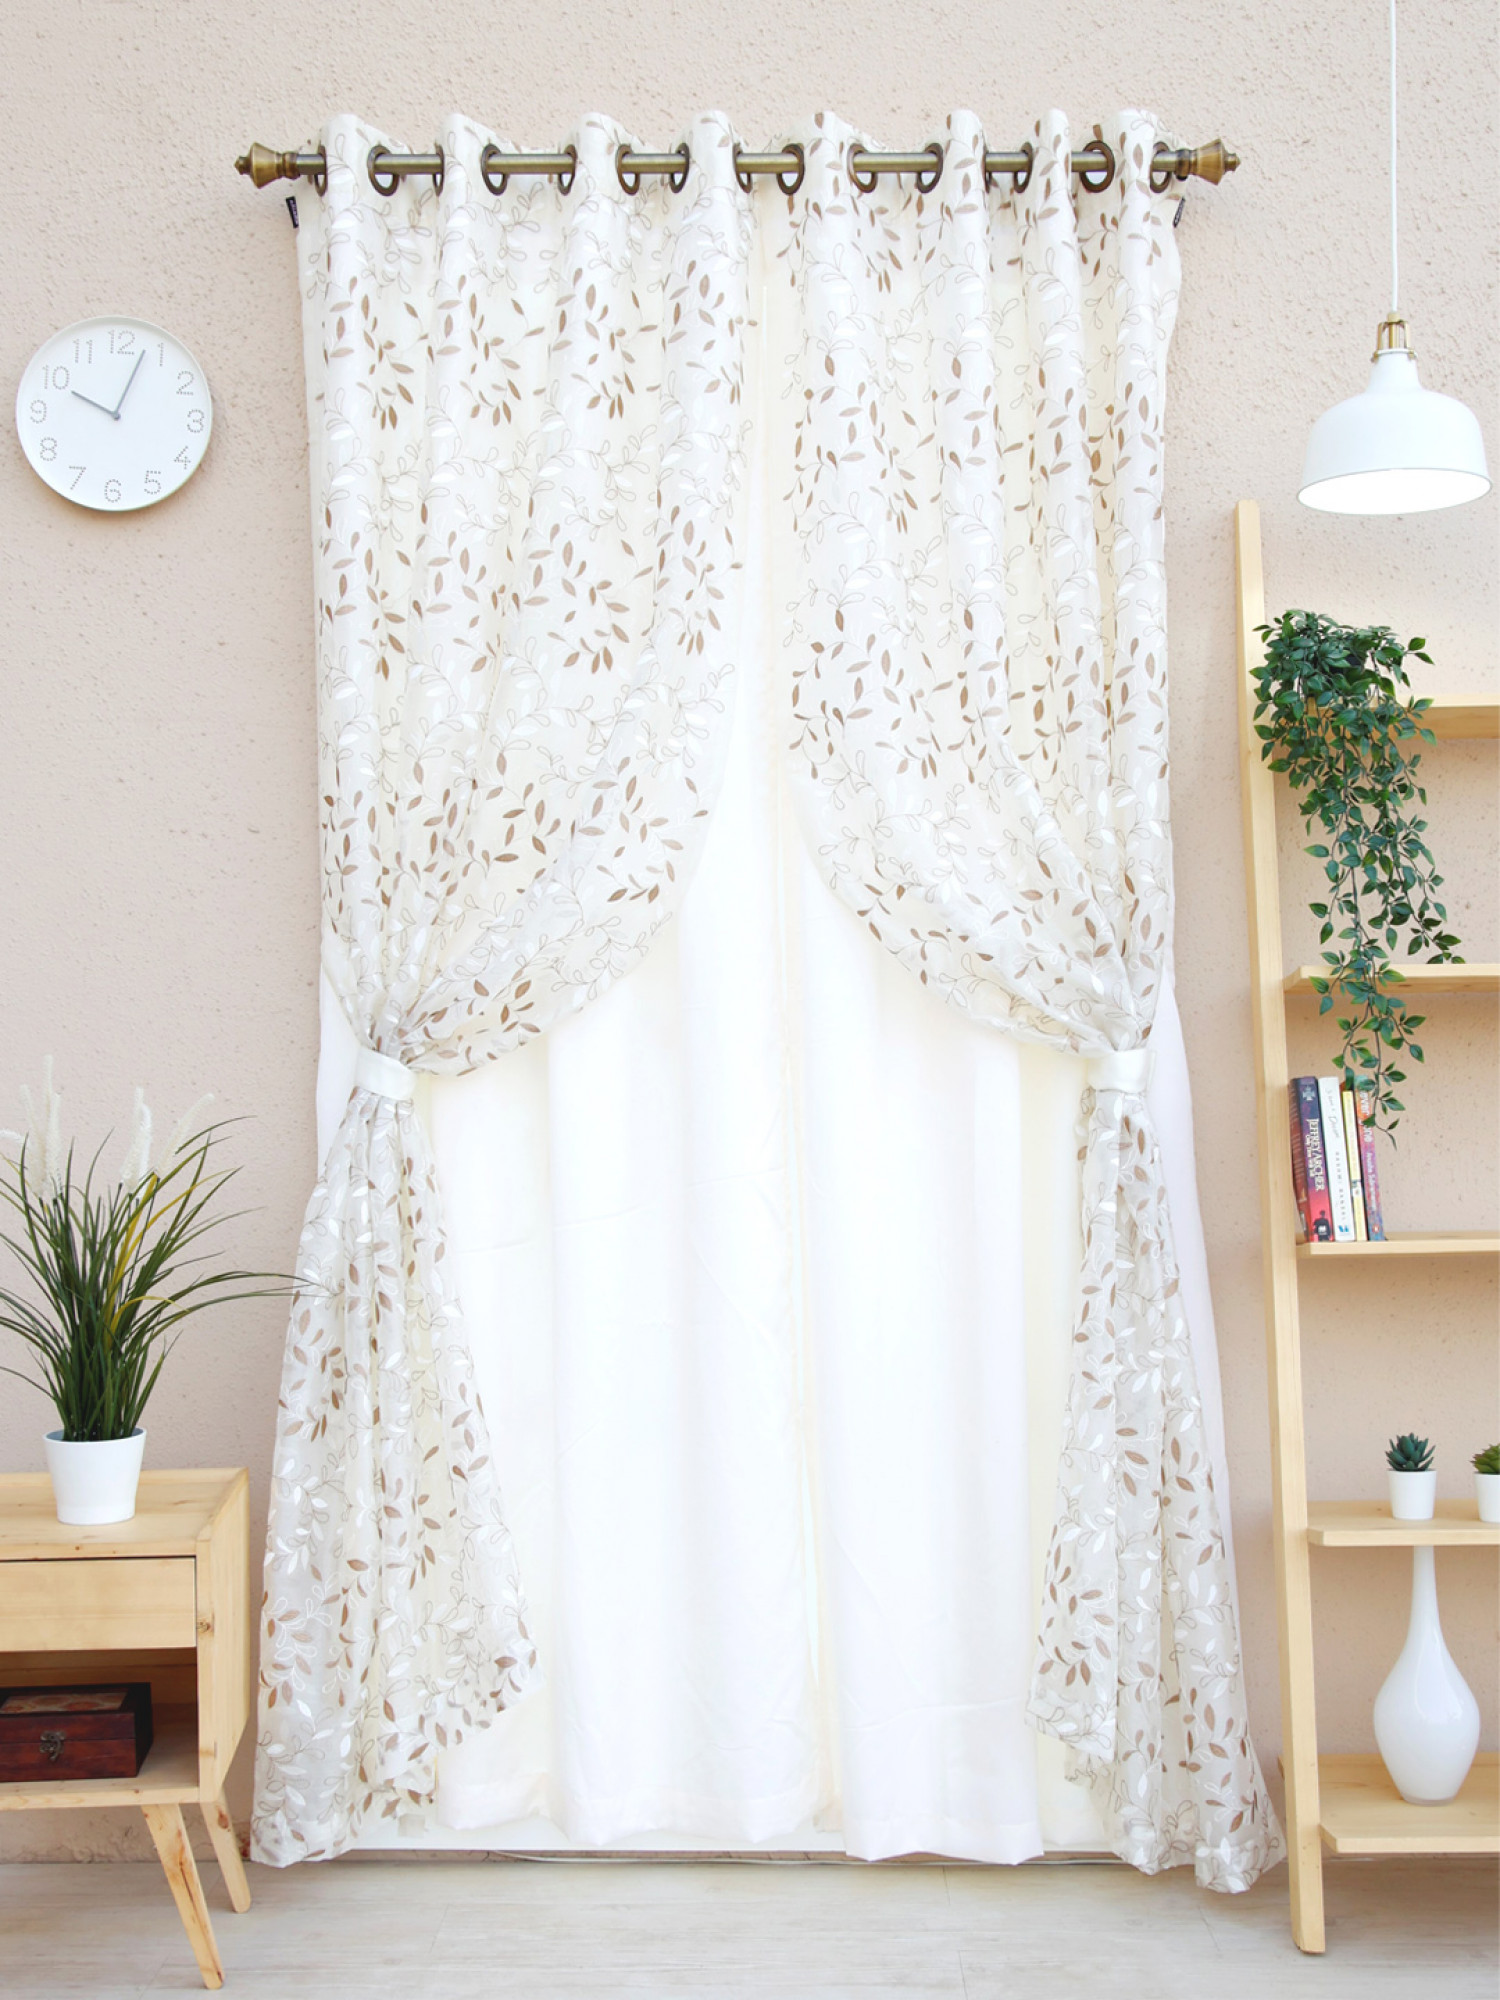 2 in 1 Gassomary Floral Curtain